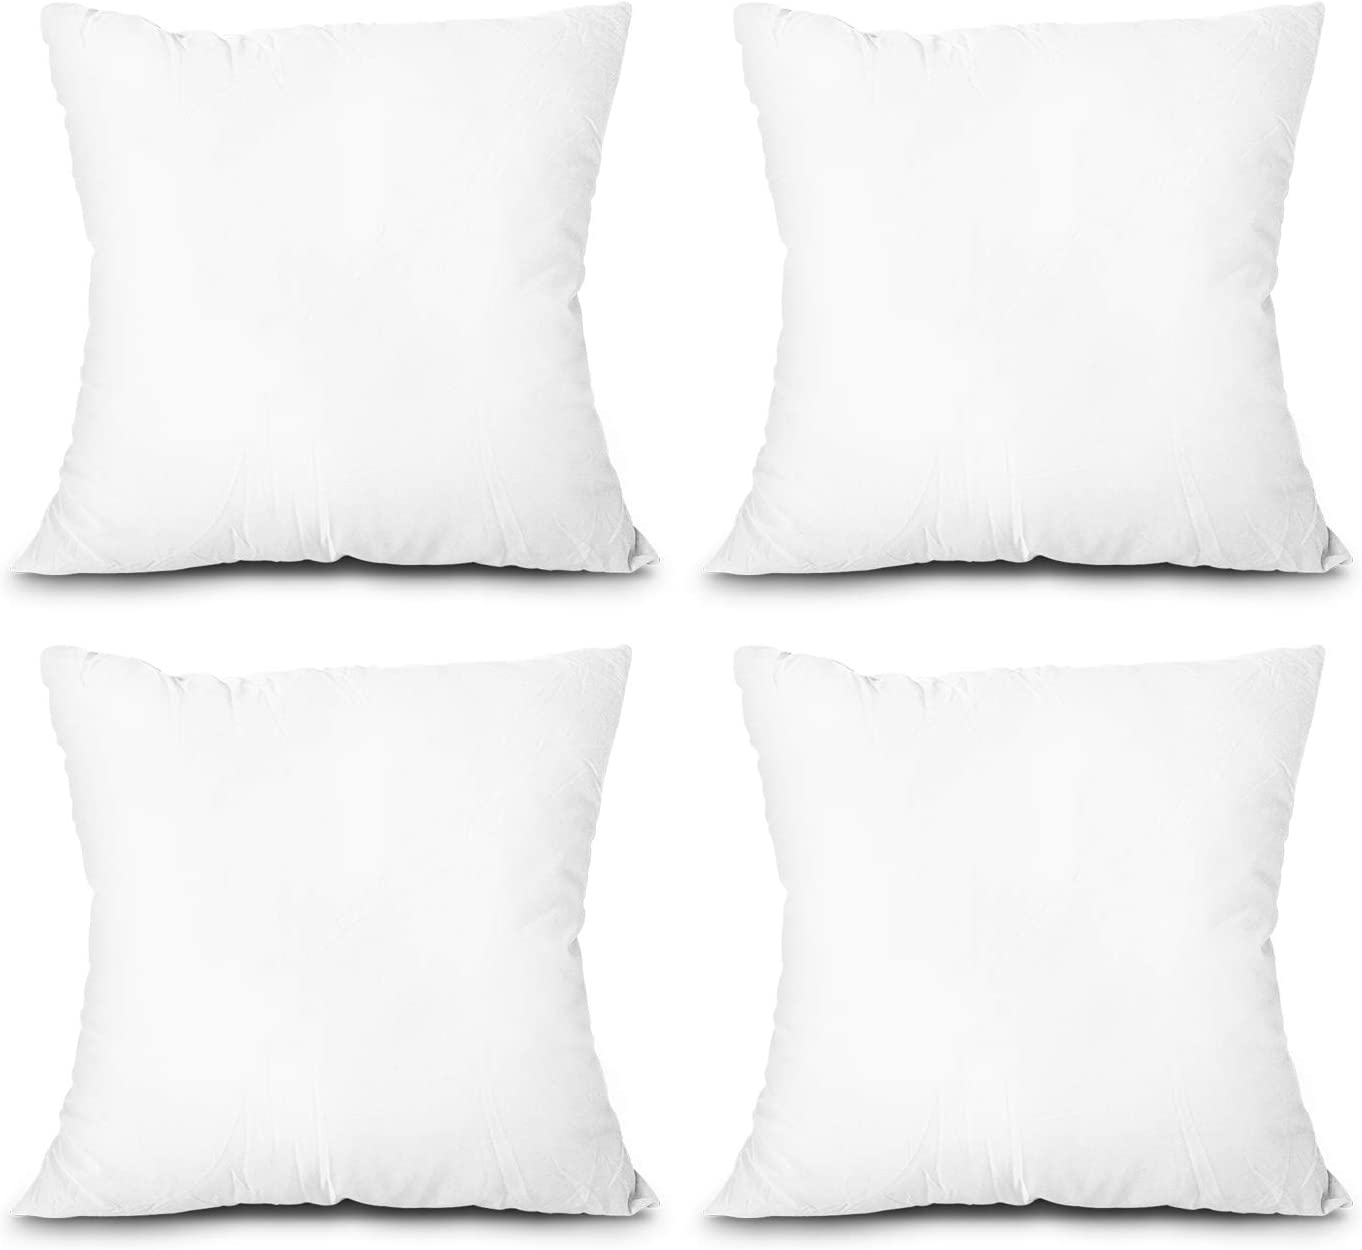 EDOW Throw Pillow Inserts, Set of 4 Lightweight Down Alternative Polyester Pillow, Couch Cushion, Sham Stuffer, Machine Washable. (White, 20x20)